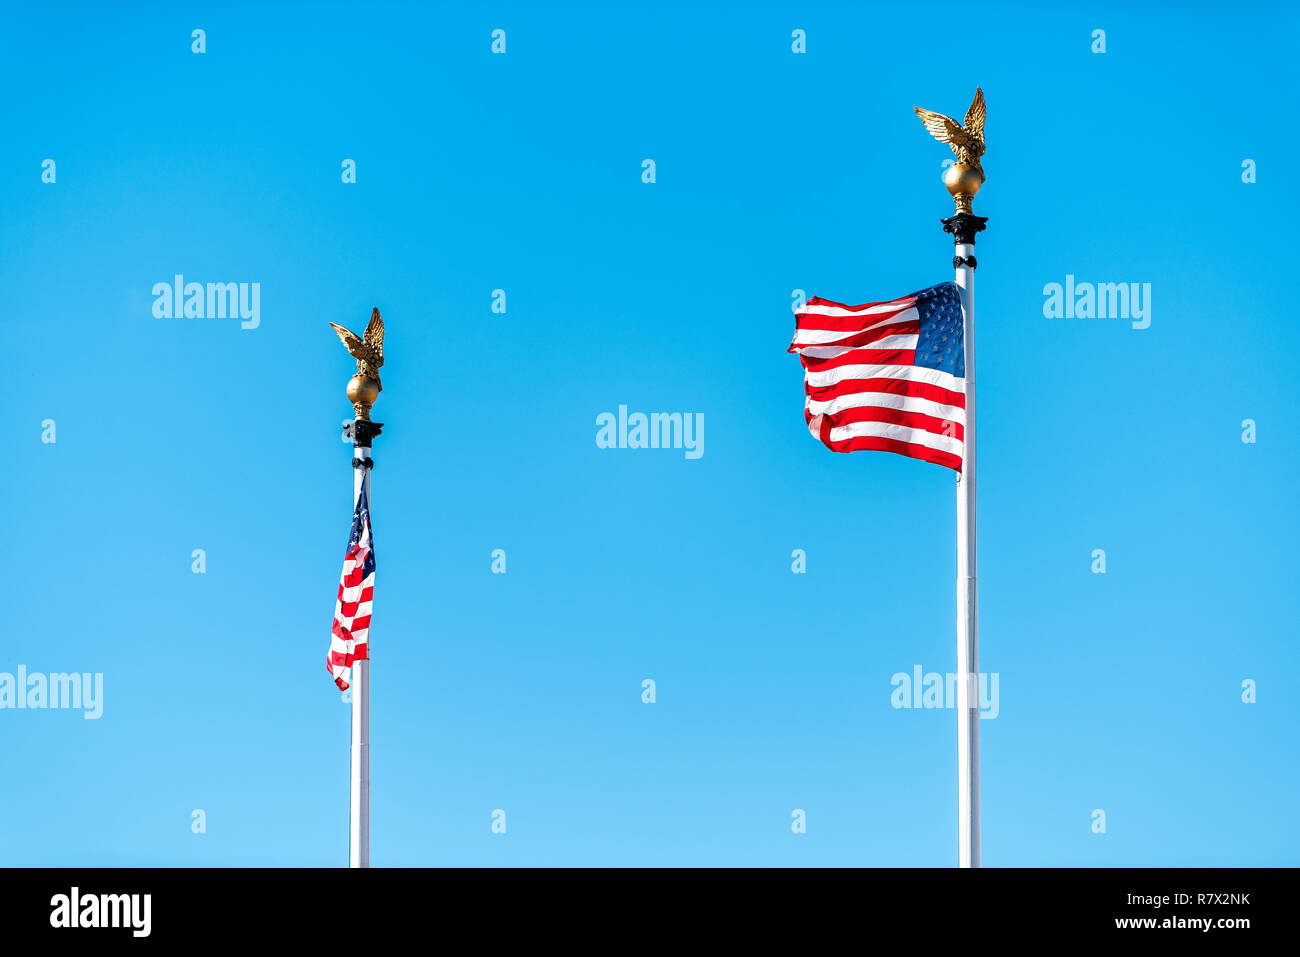 Washington DC, USA Union Station two flagpoles American Flags on poles on street, isolated against colorful color vibrant blue sky closeup - Stock Image